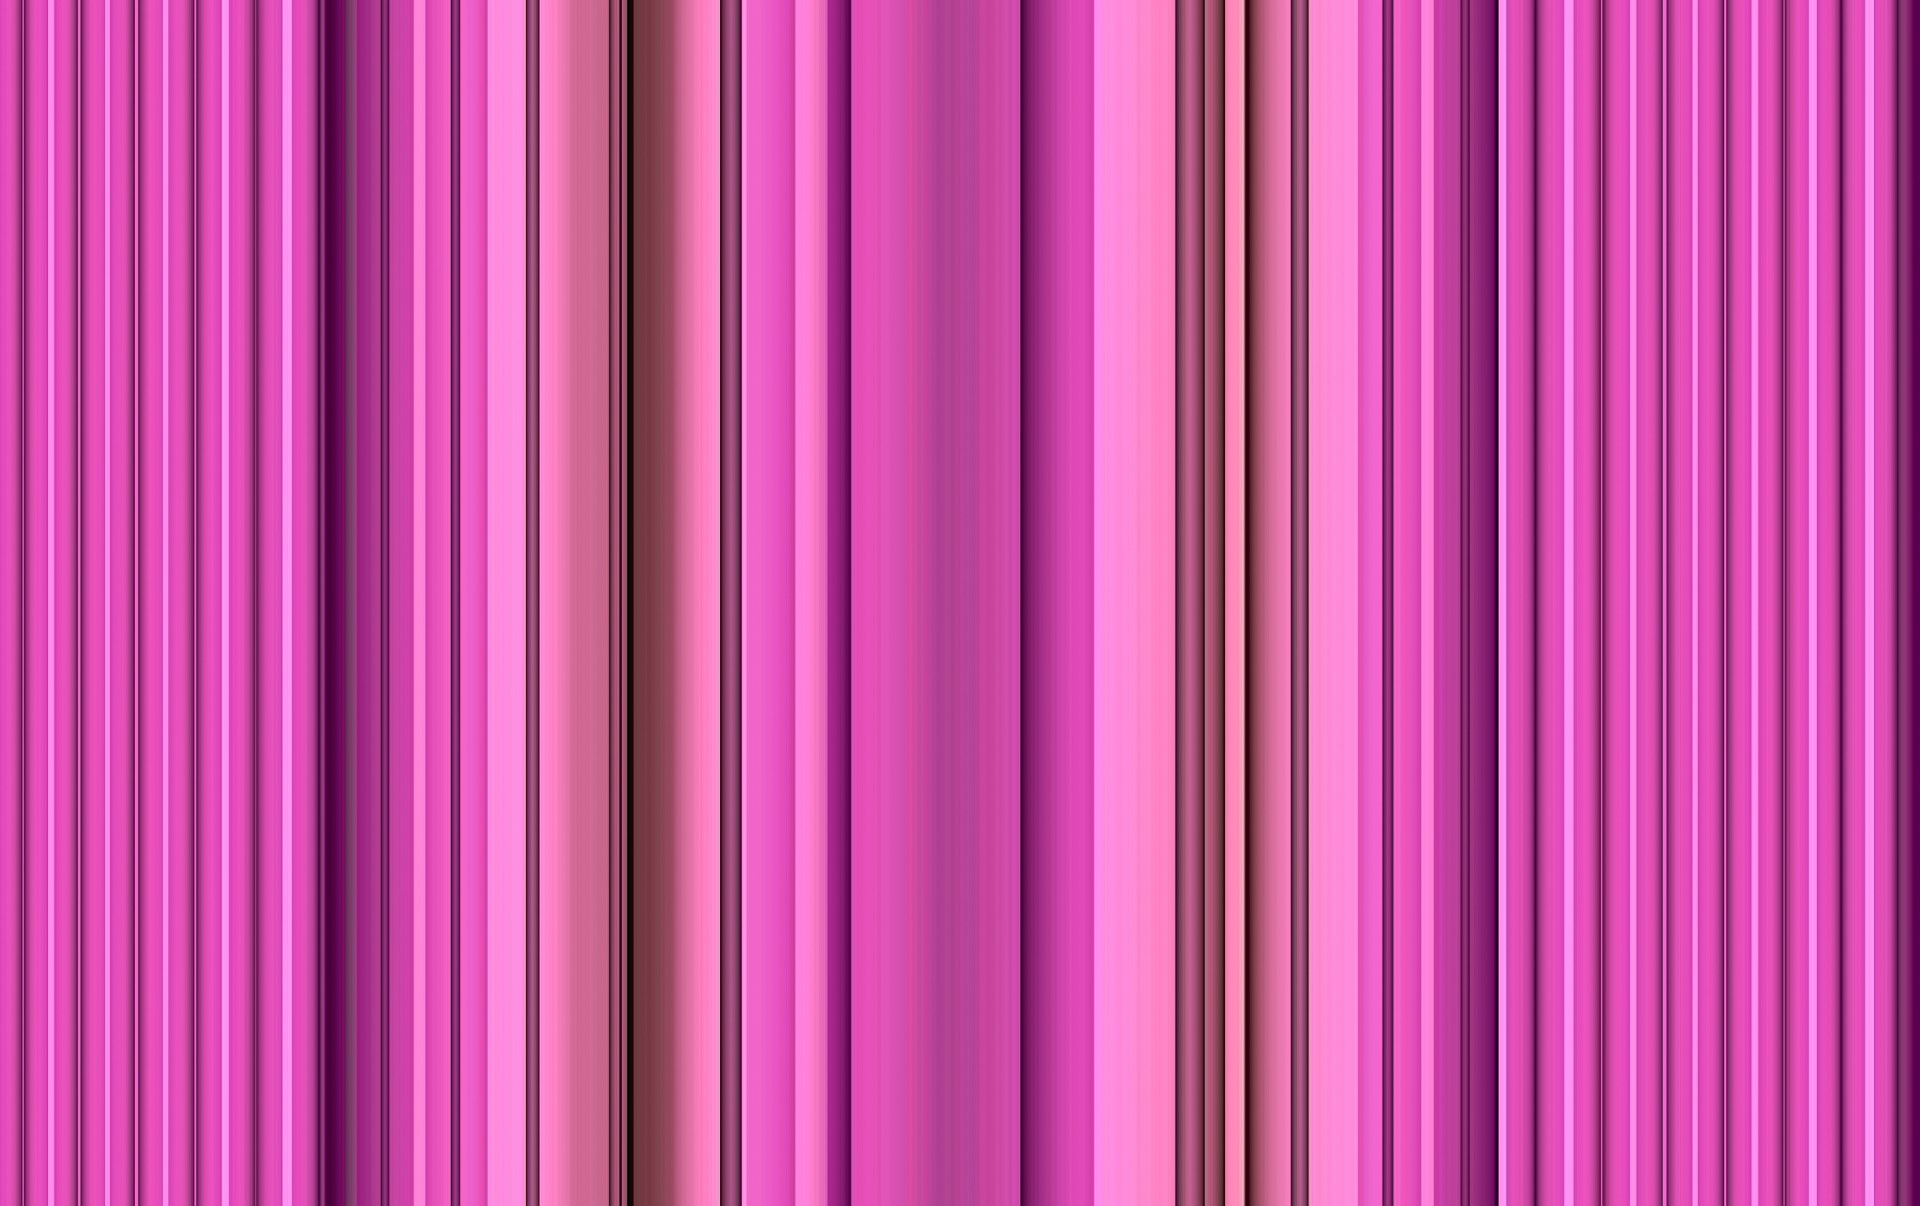 Stripesstripedpinkshadeswallpaper Free Image From